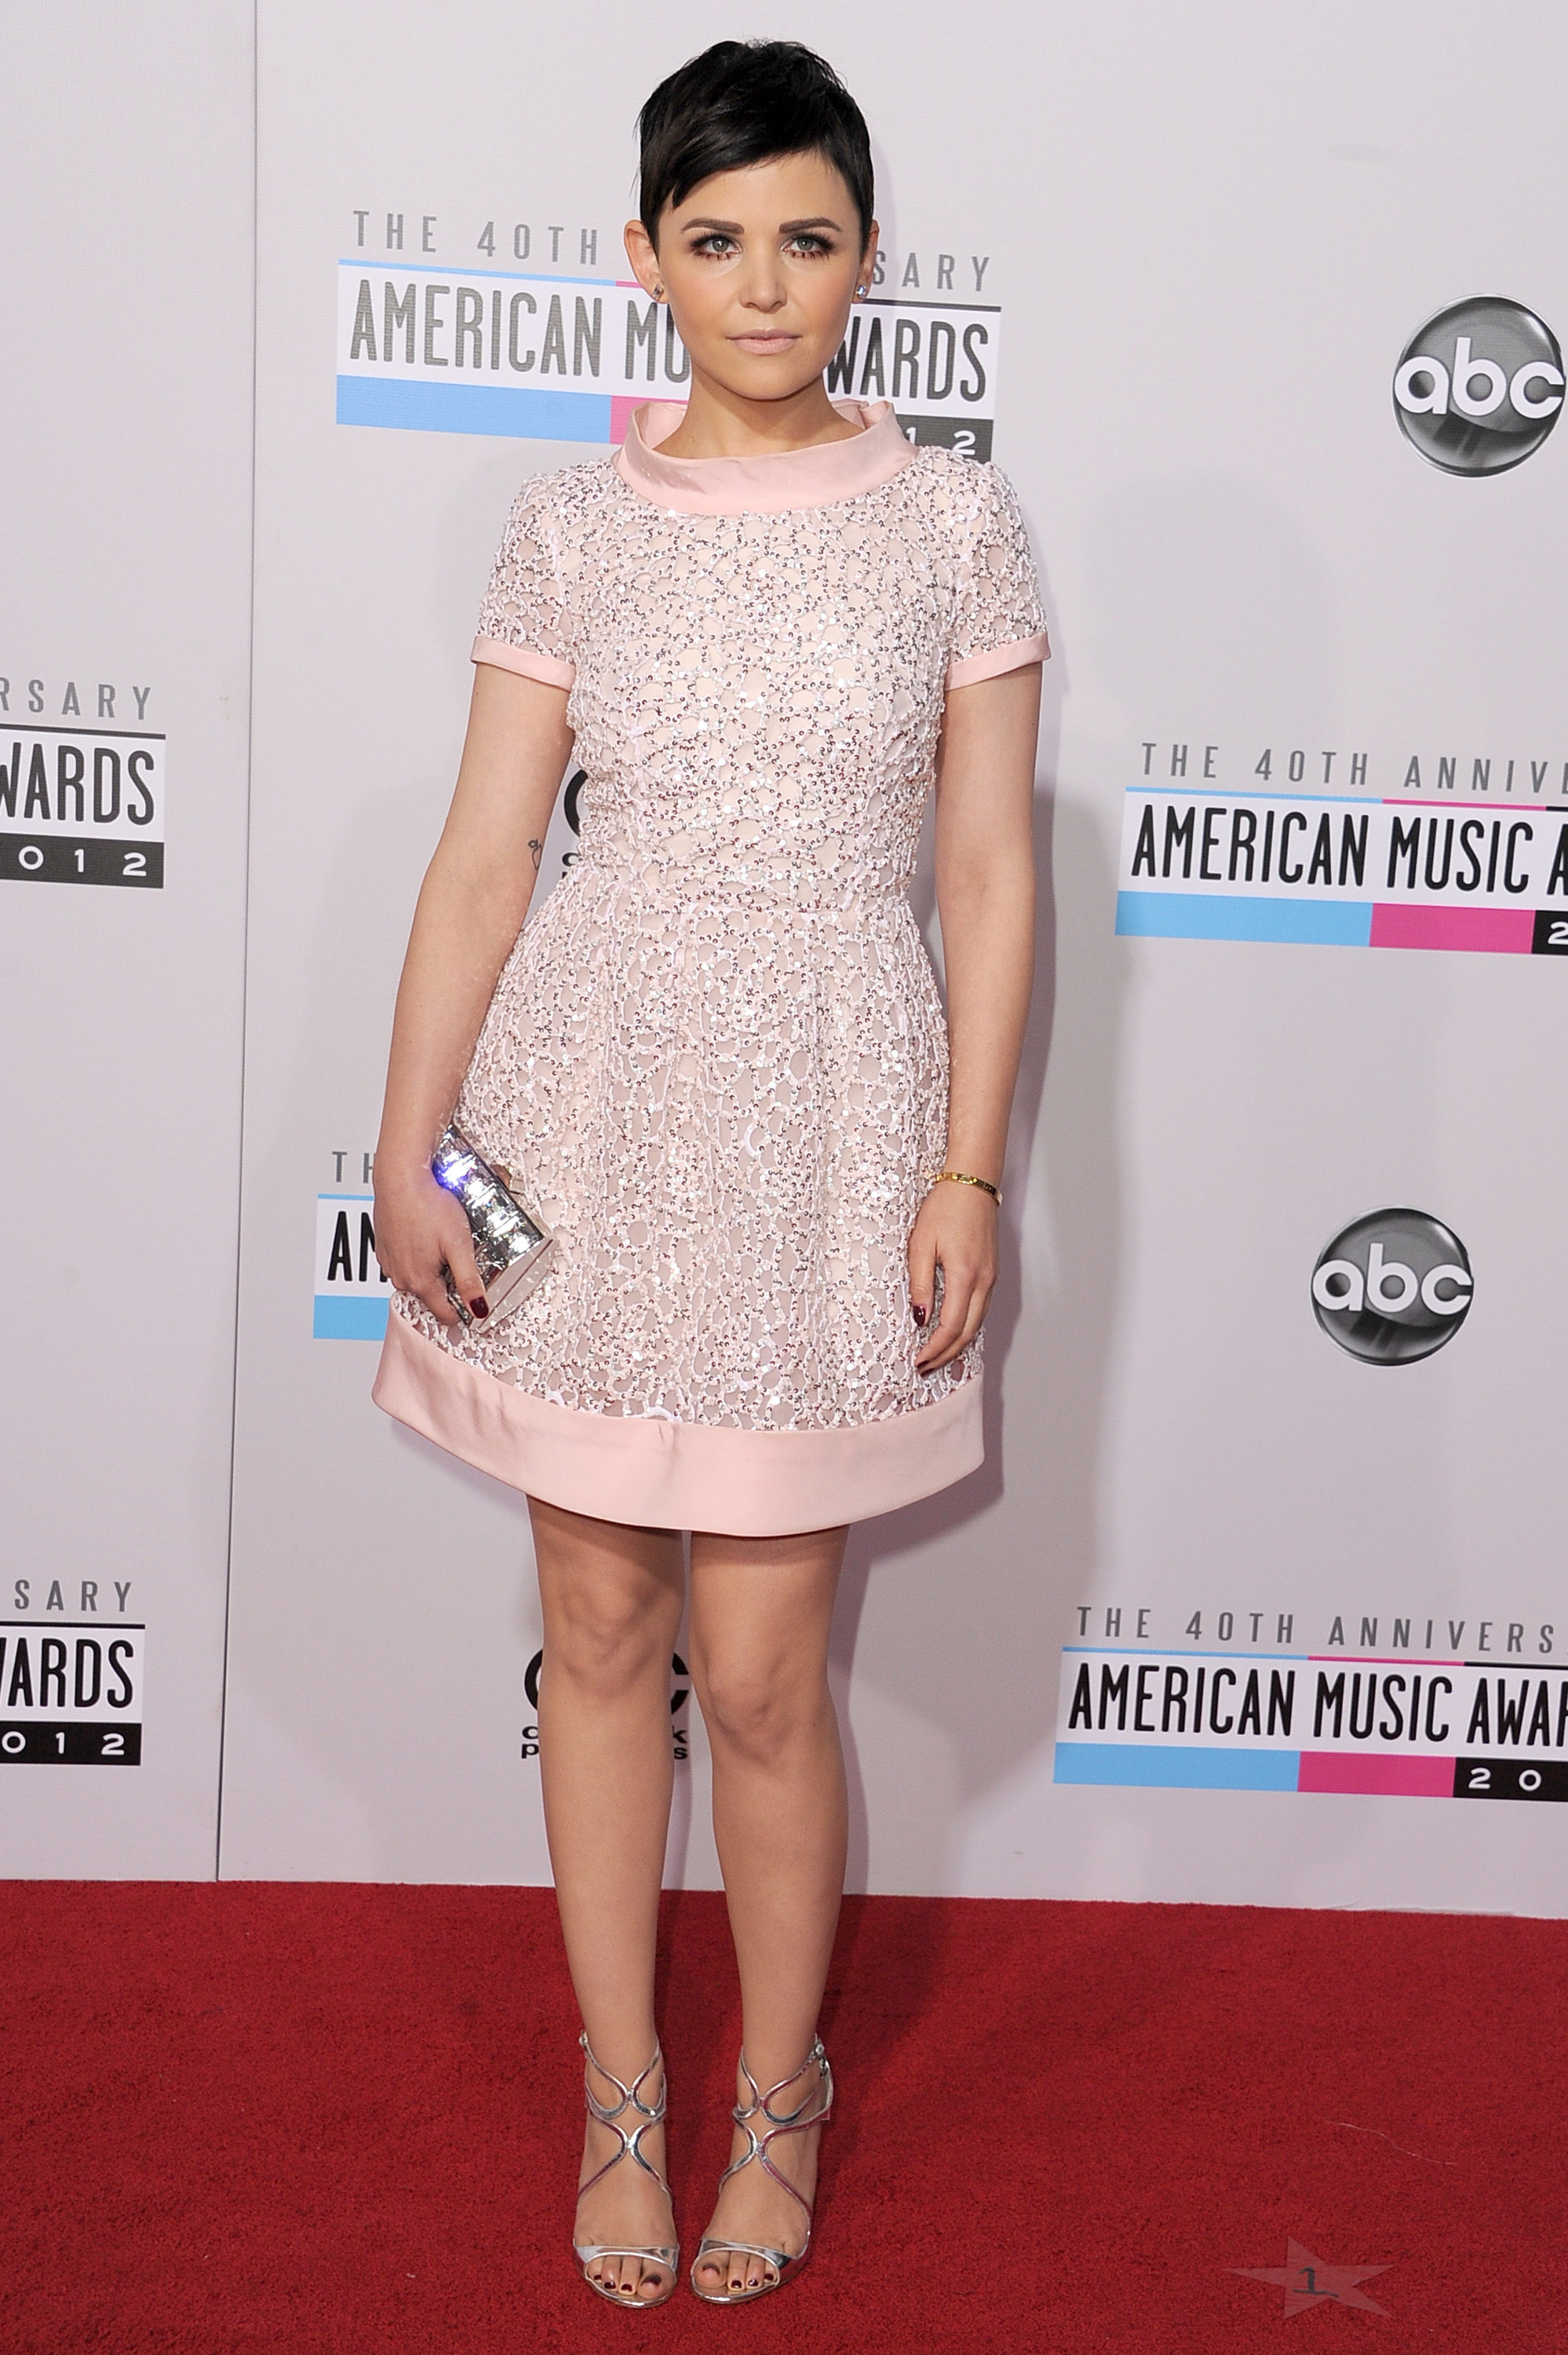 Ginnifer Goodwin dress